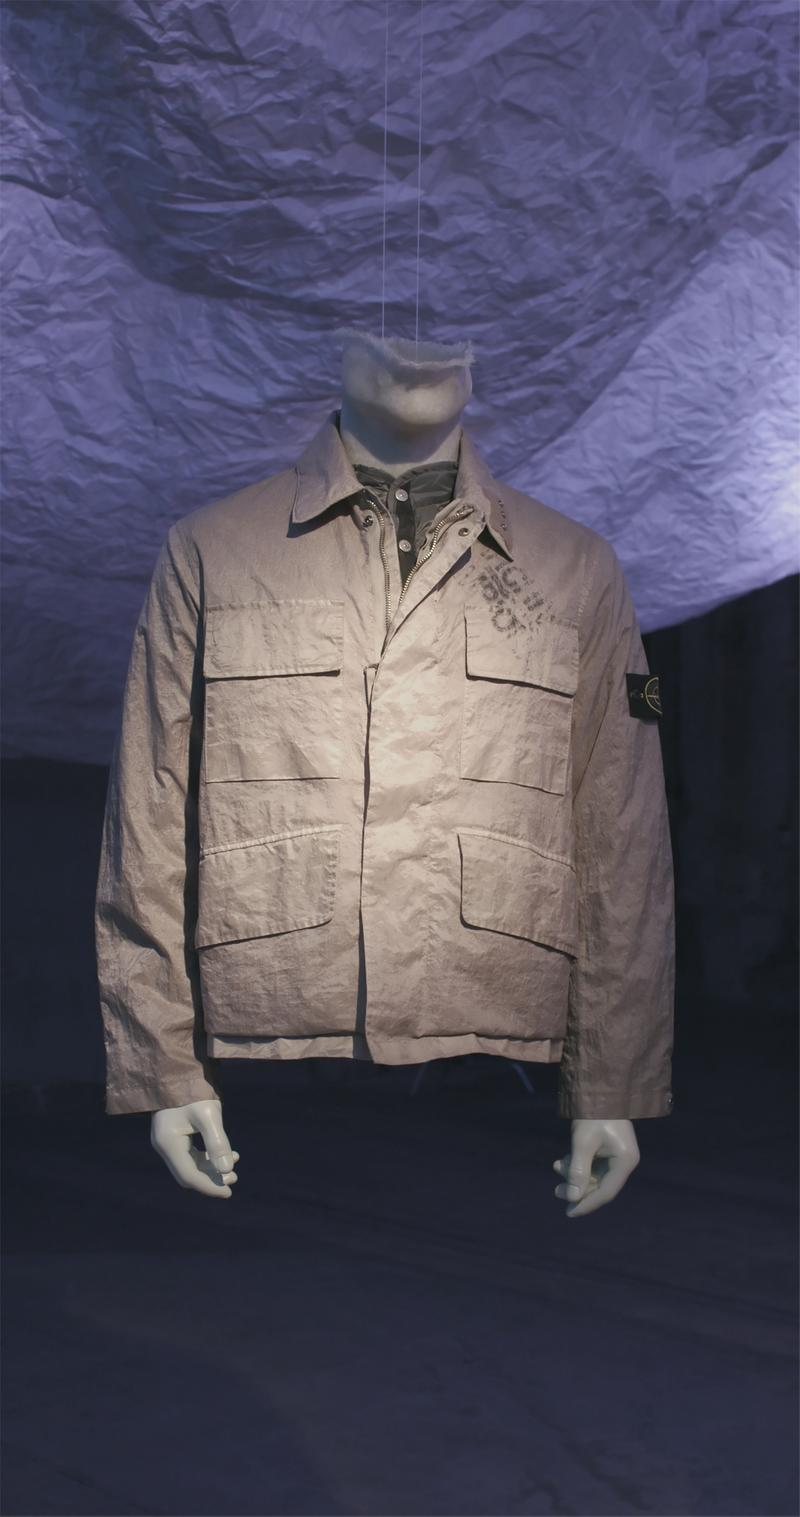 Tan shirt collar jacket with four patch pockets and faded lettering on left chest, displayed on mannequin bust